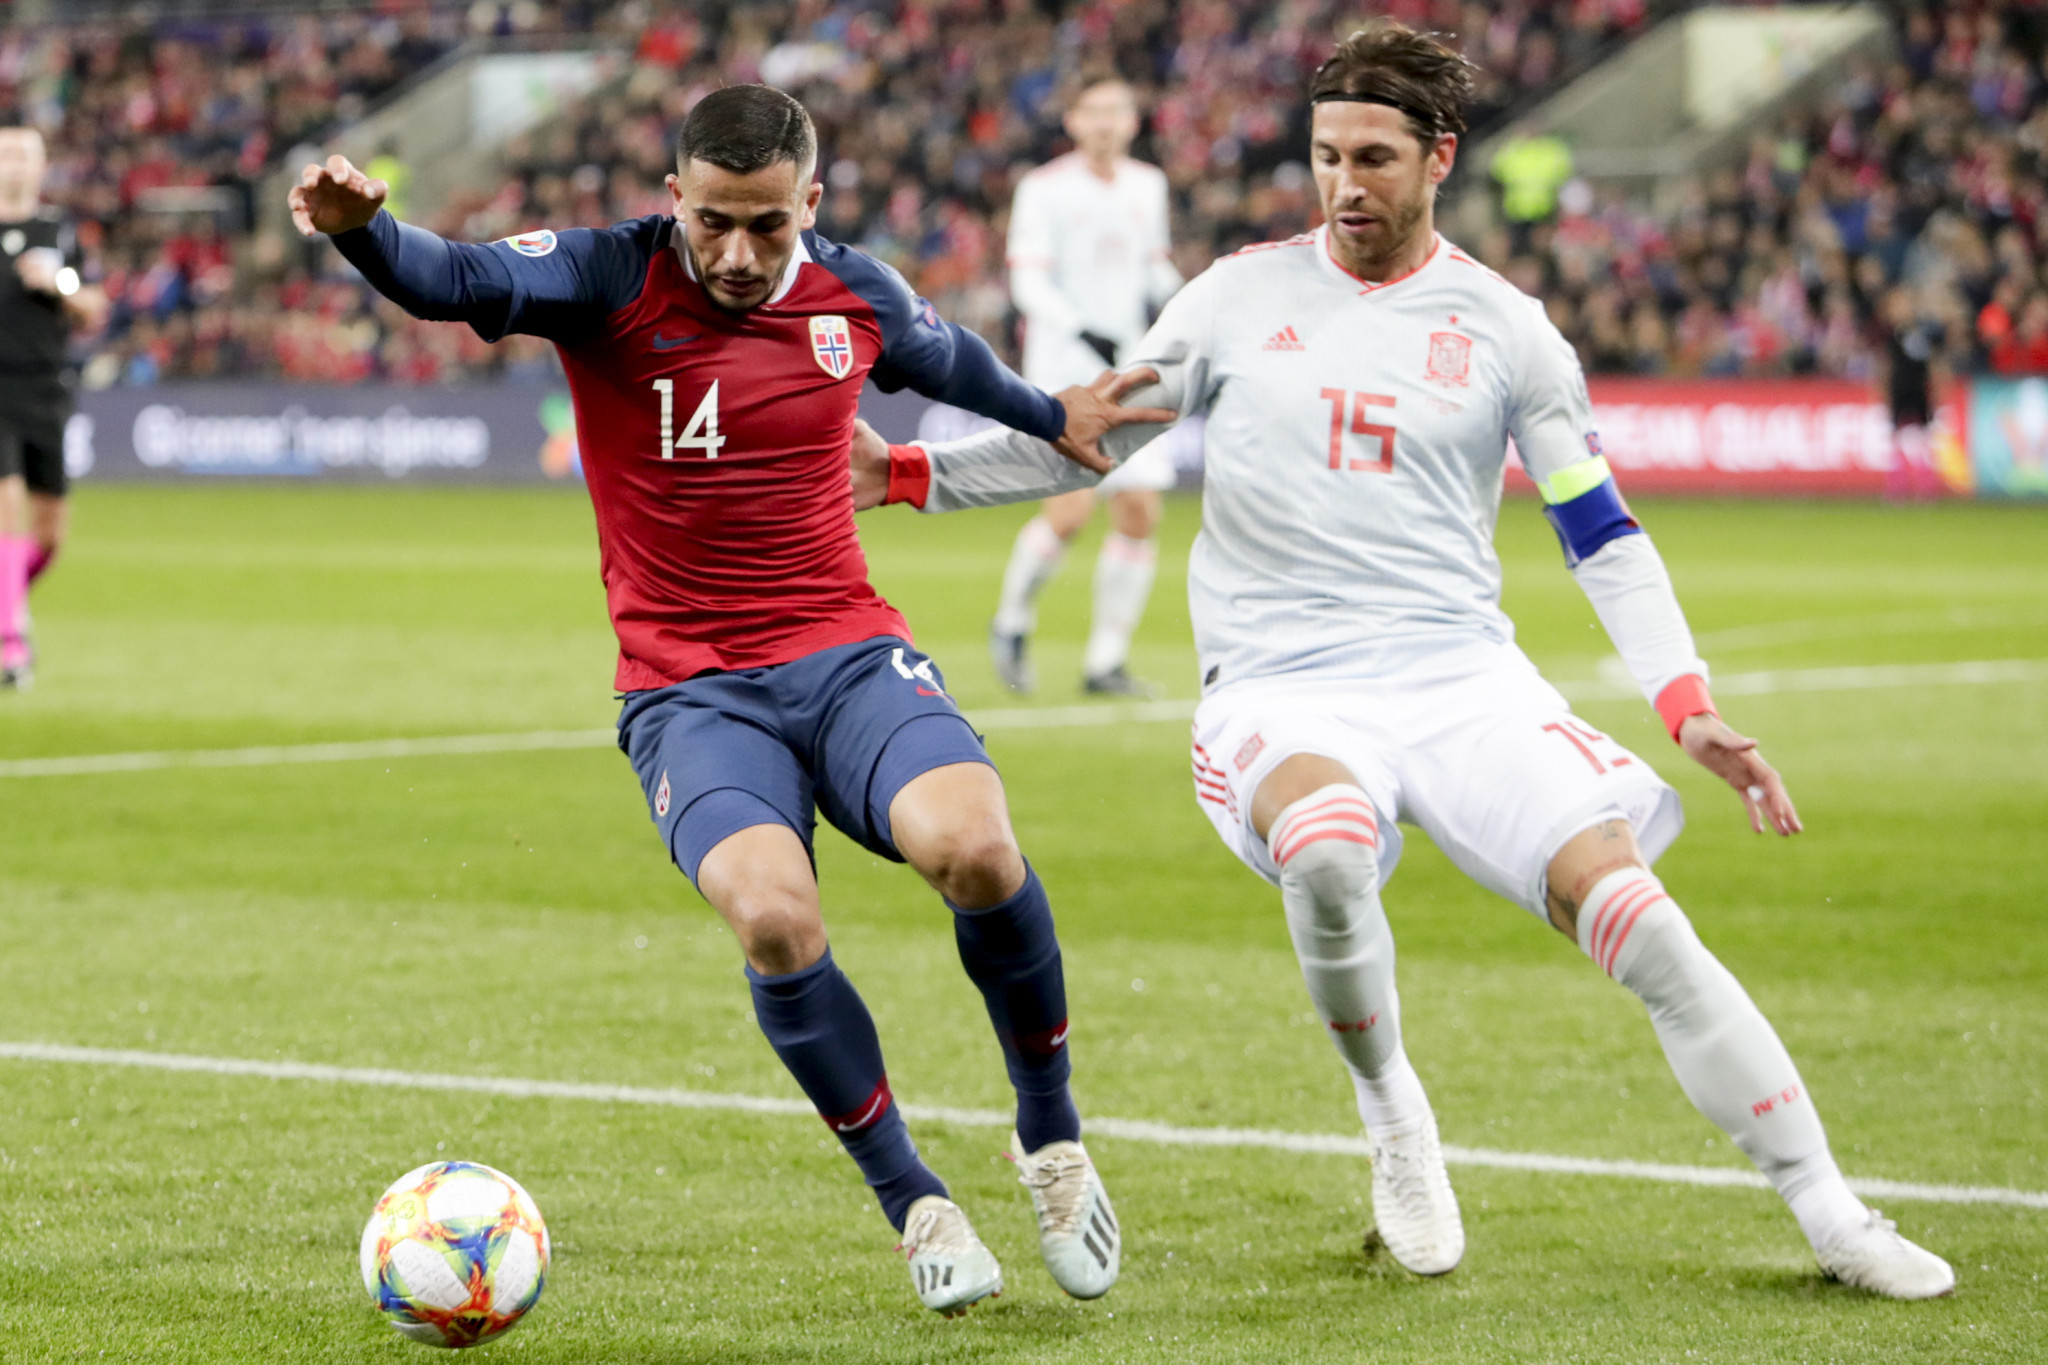 Sergio Ramos described playing for Spain at Tokyo 2020 as a